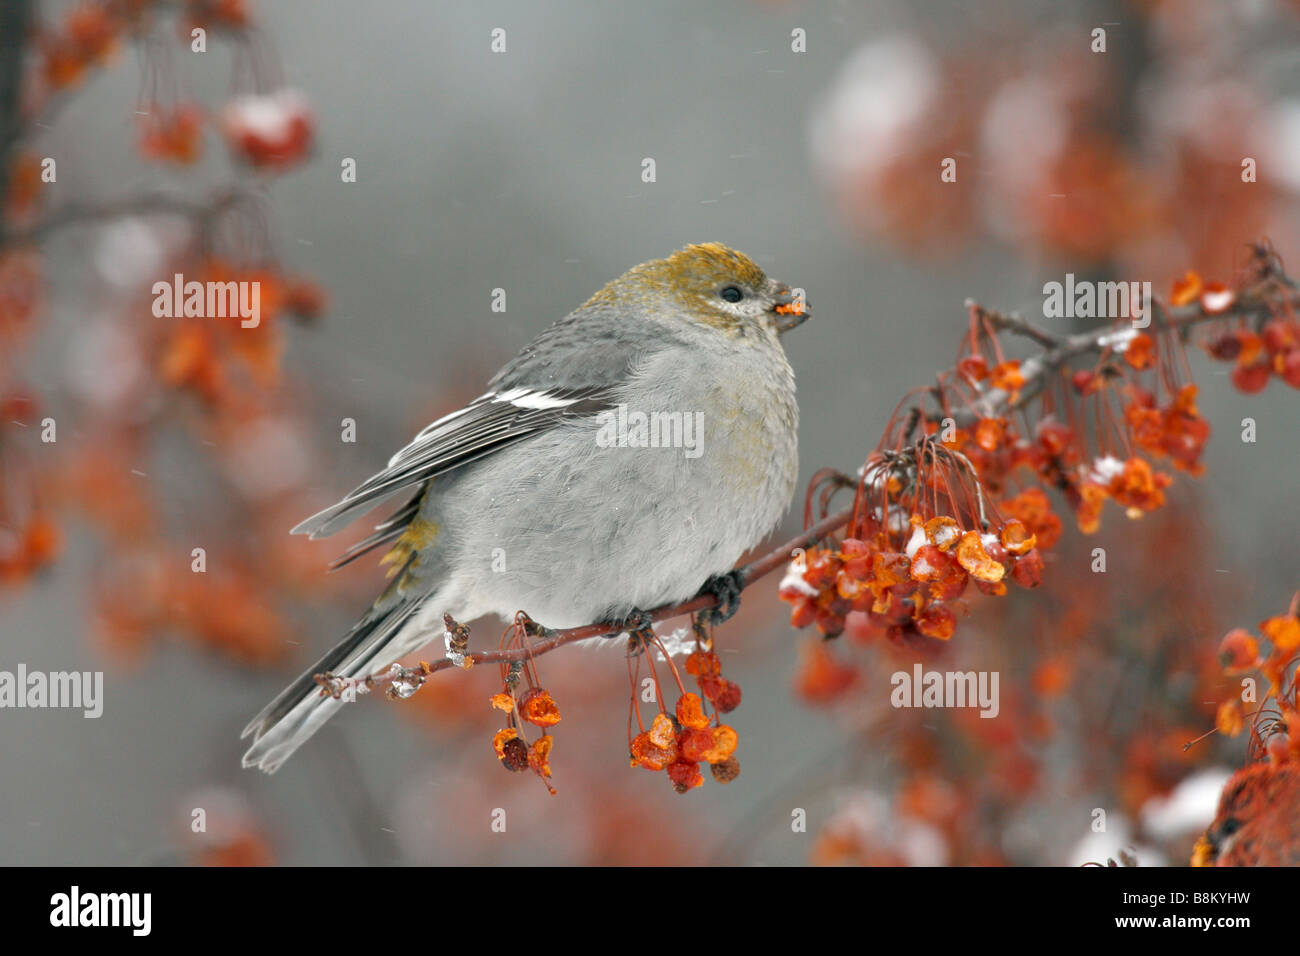 Female Pine Grosbeak Eating Crabapple Berries in Snow - Stock Image